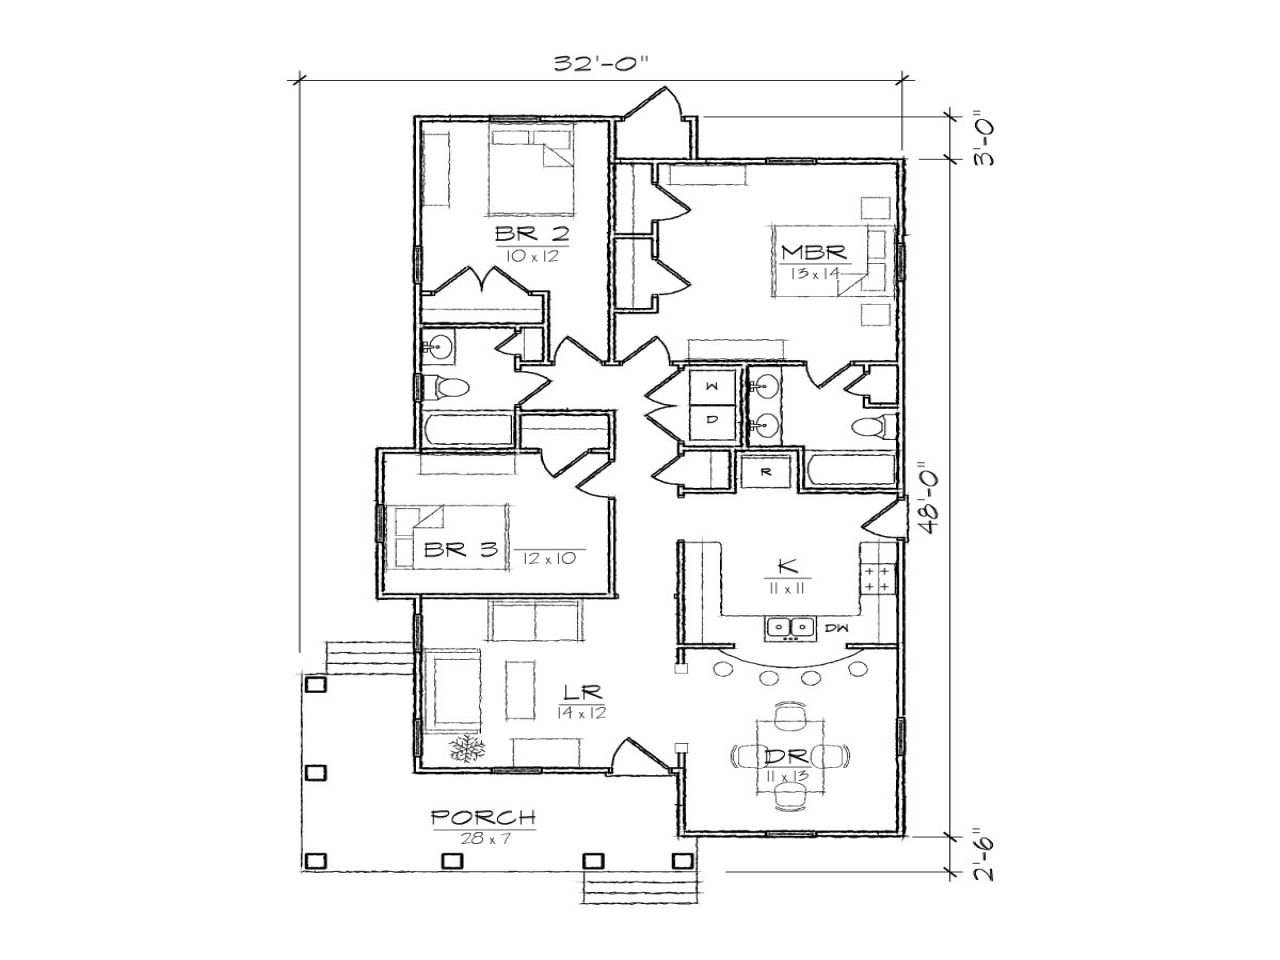 Bungalow house floor plans two story house floor plans for 2 story bungalow house plans